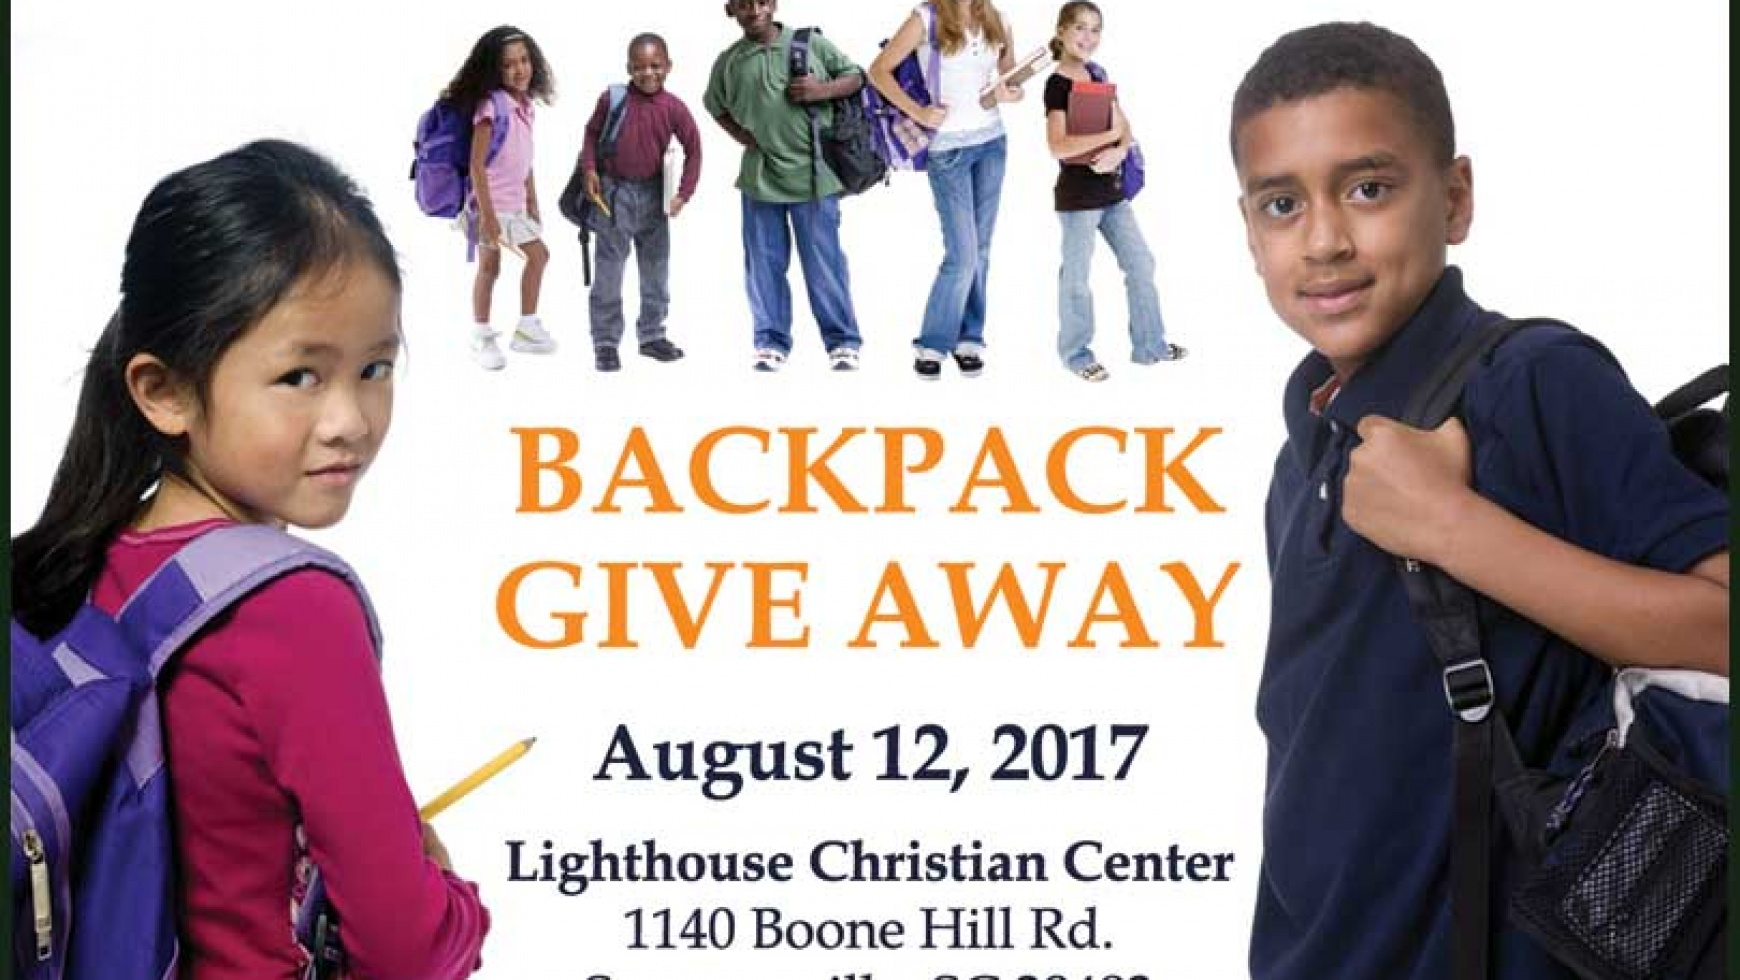 Backpack Give Away